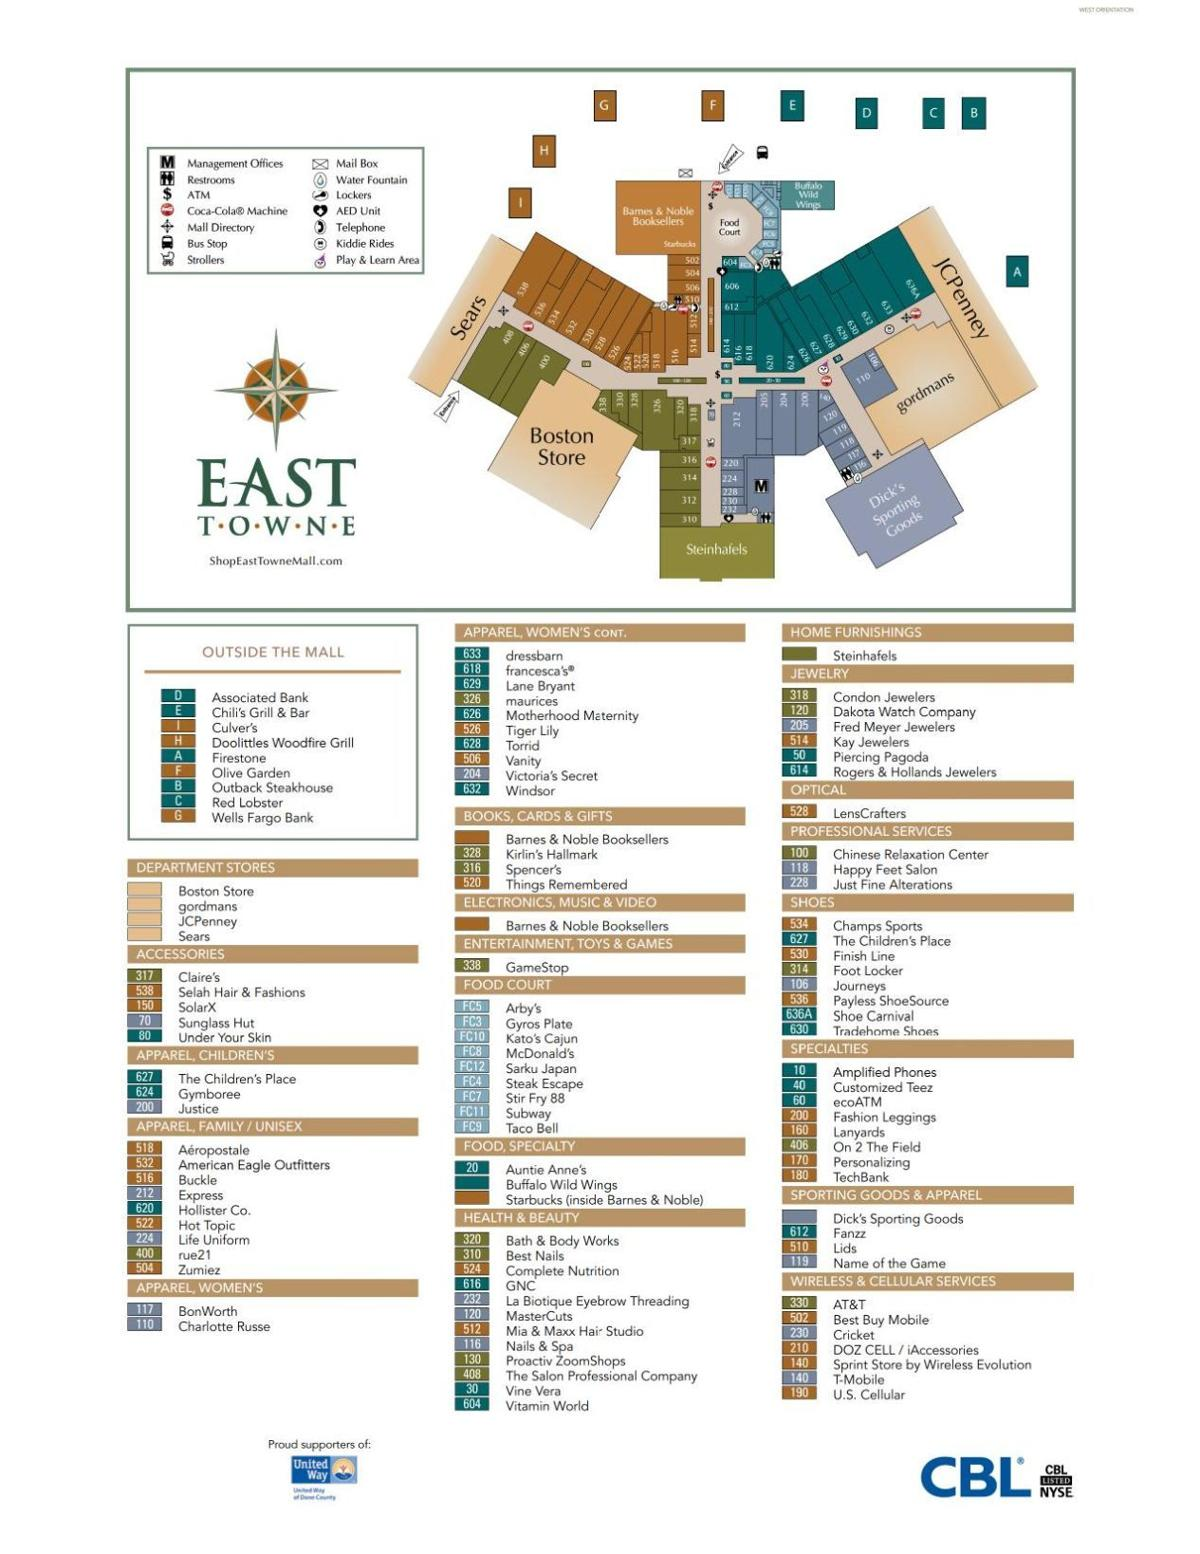 West Towne Mall Map Map of East Towne Mall | | madison.com West Towne Mall Map